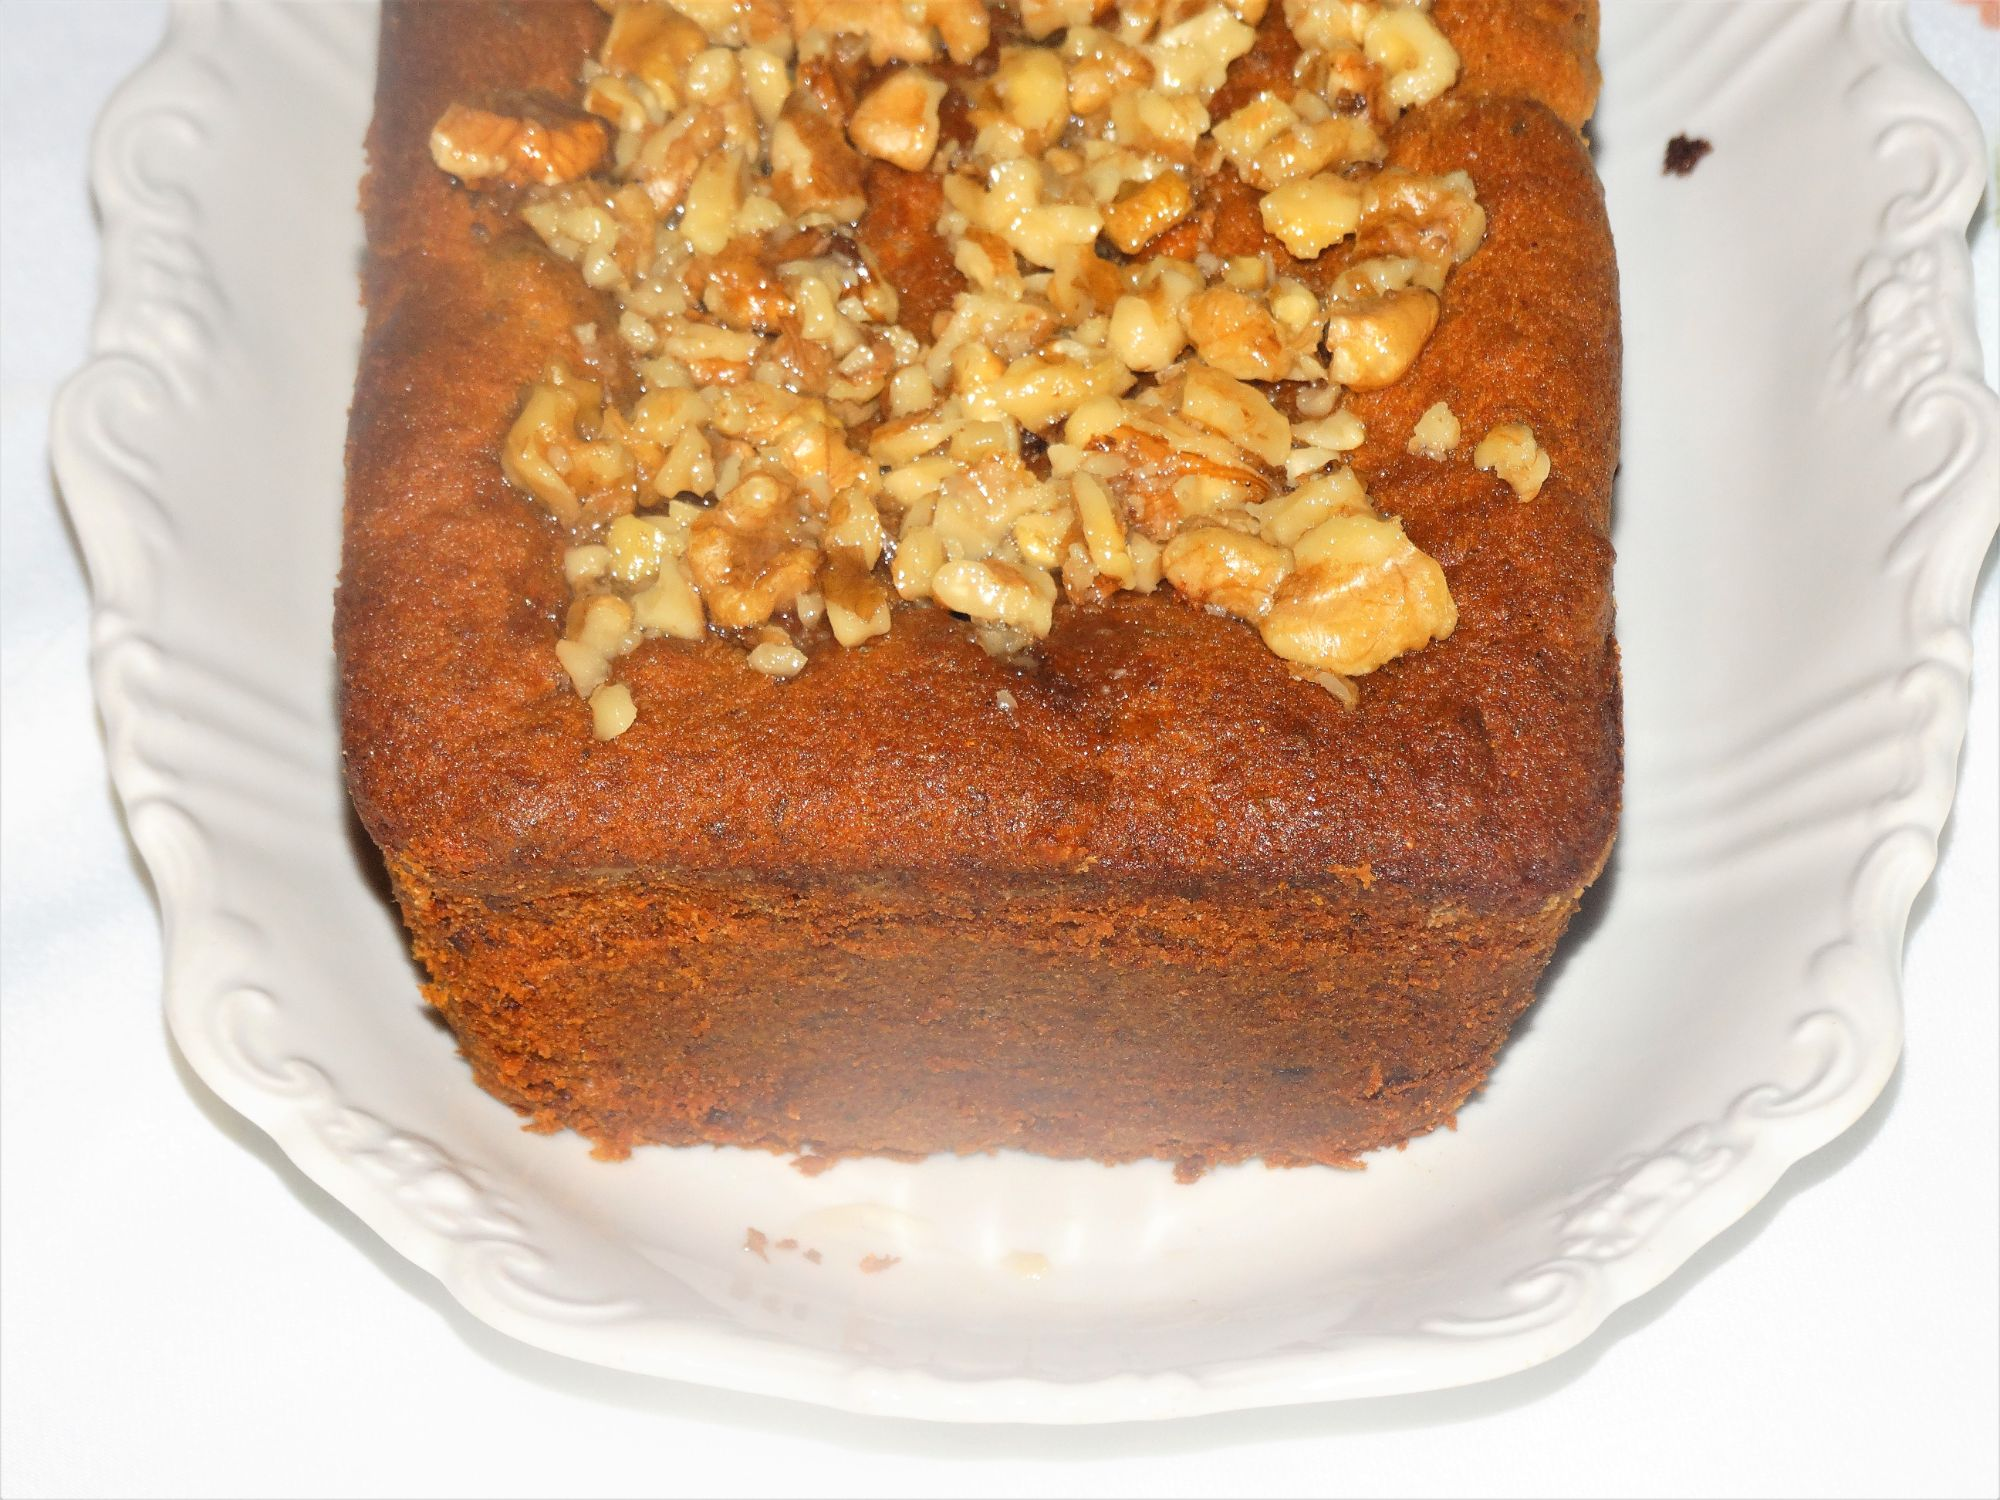 Banana Honey Date and Walnut Loaf Cake